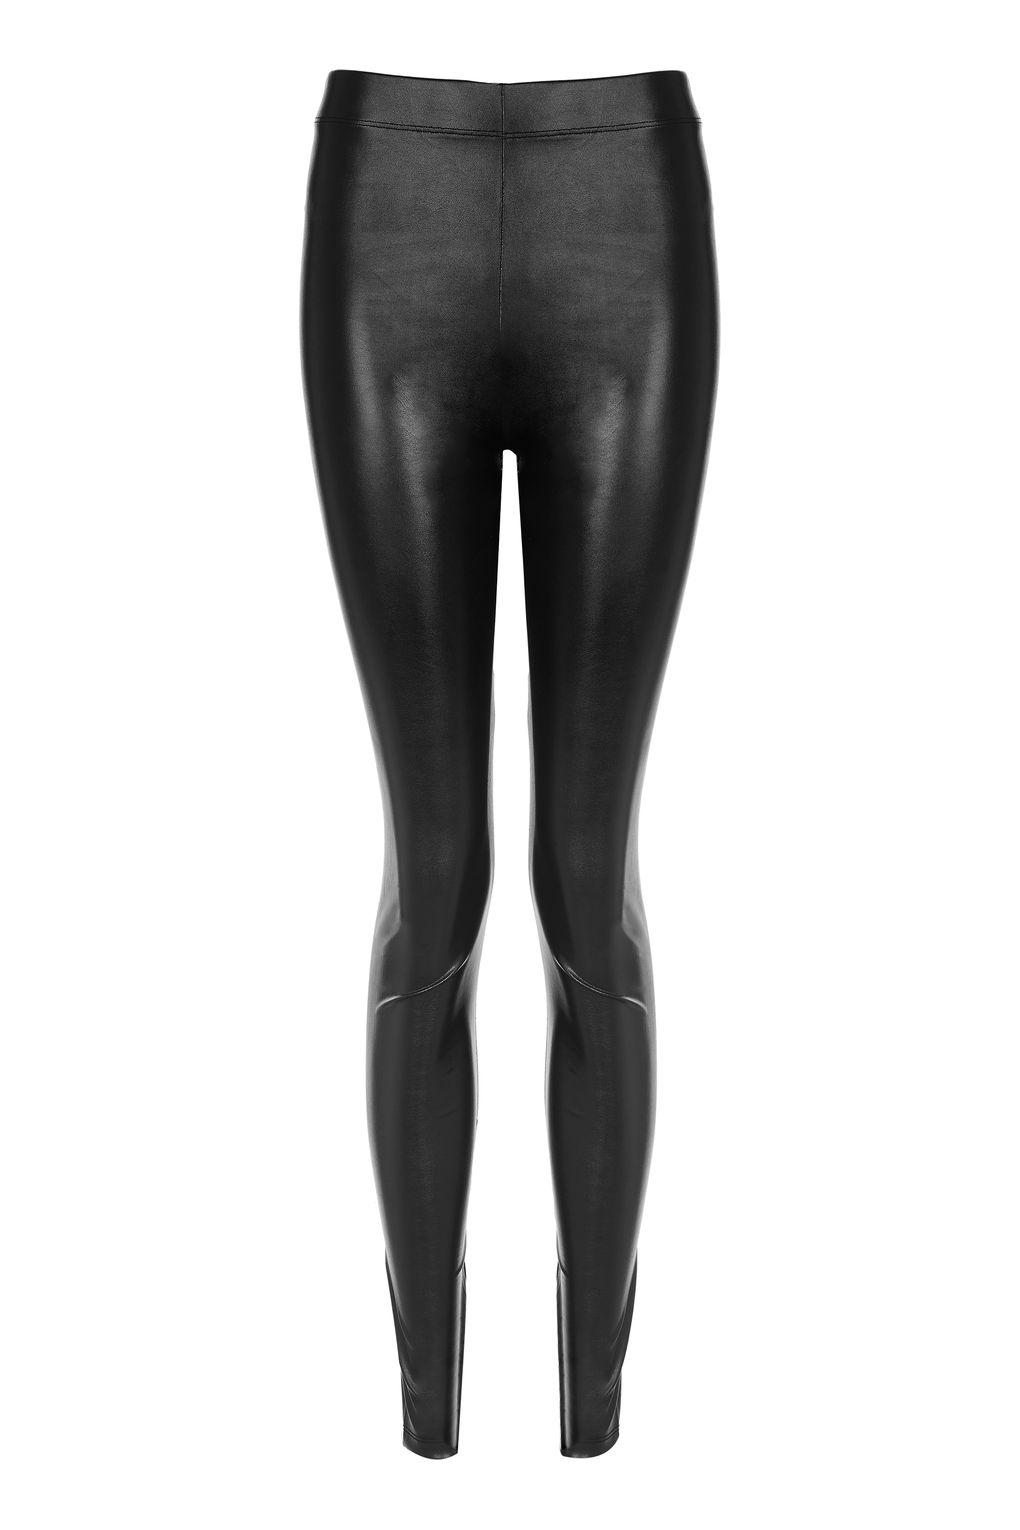 08e4af0bcd3ce TOPSHOP Tall Wet-look Leggings in Black - Lyst